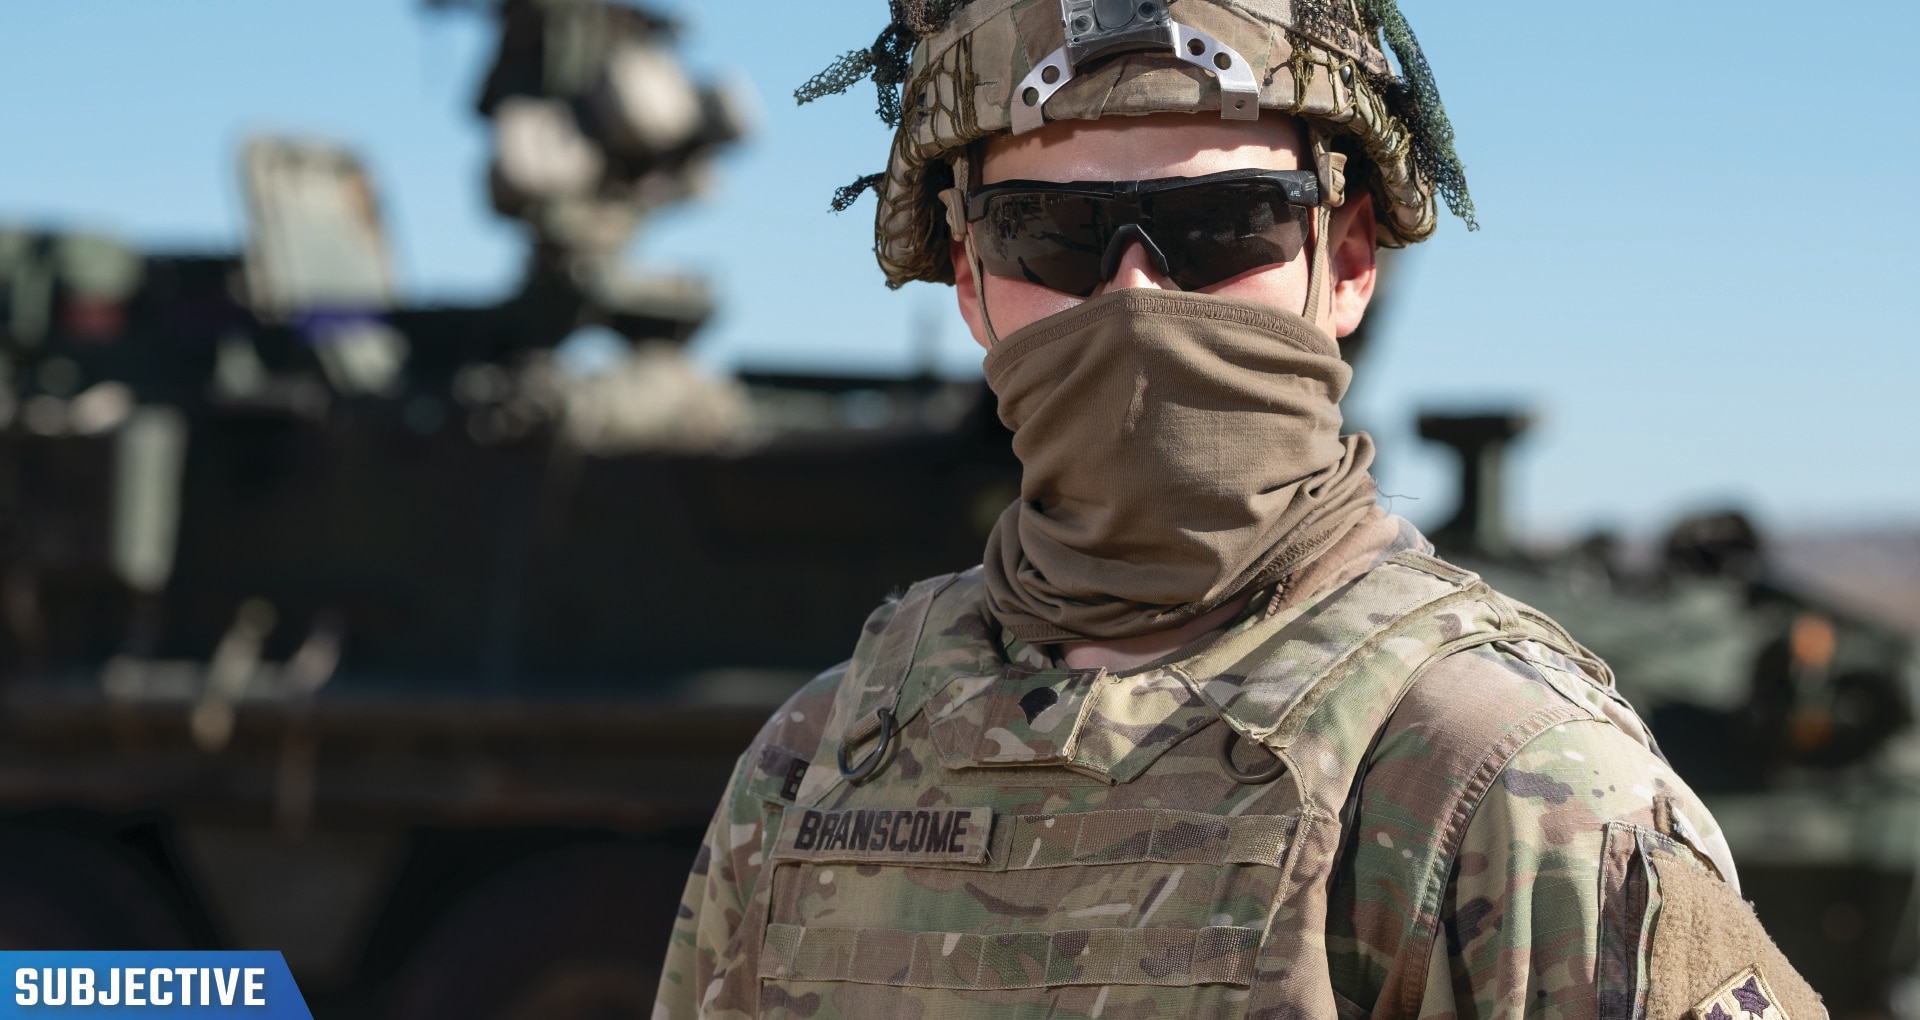 Image of a Cavalry Scout wearing sunglasses and gear outside